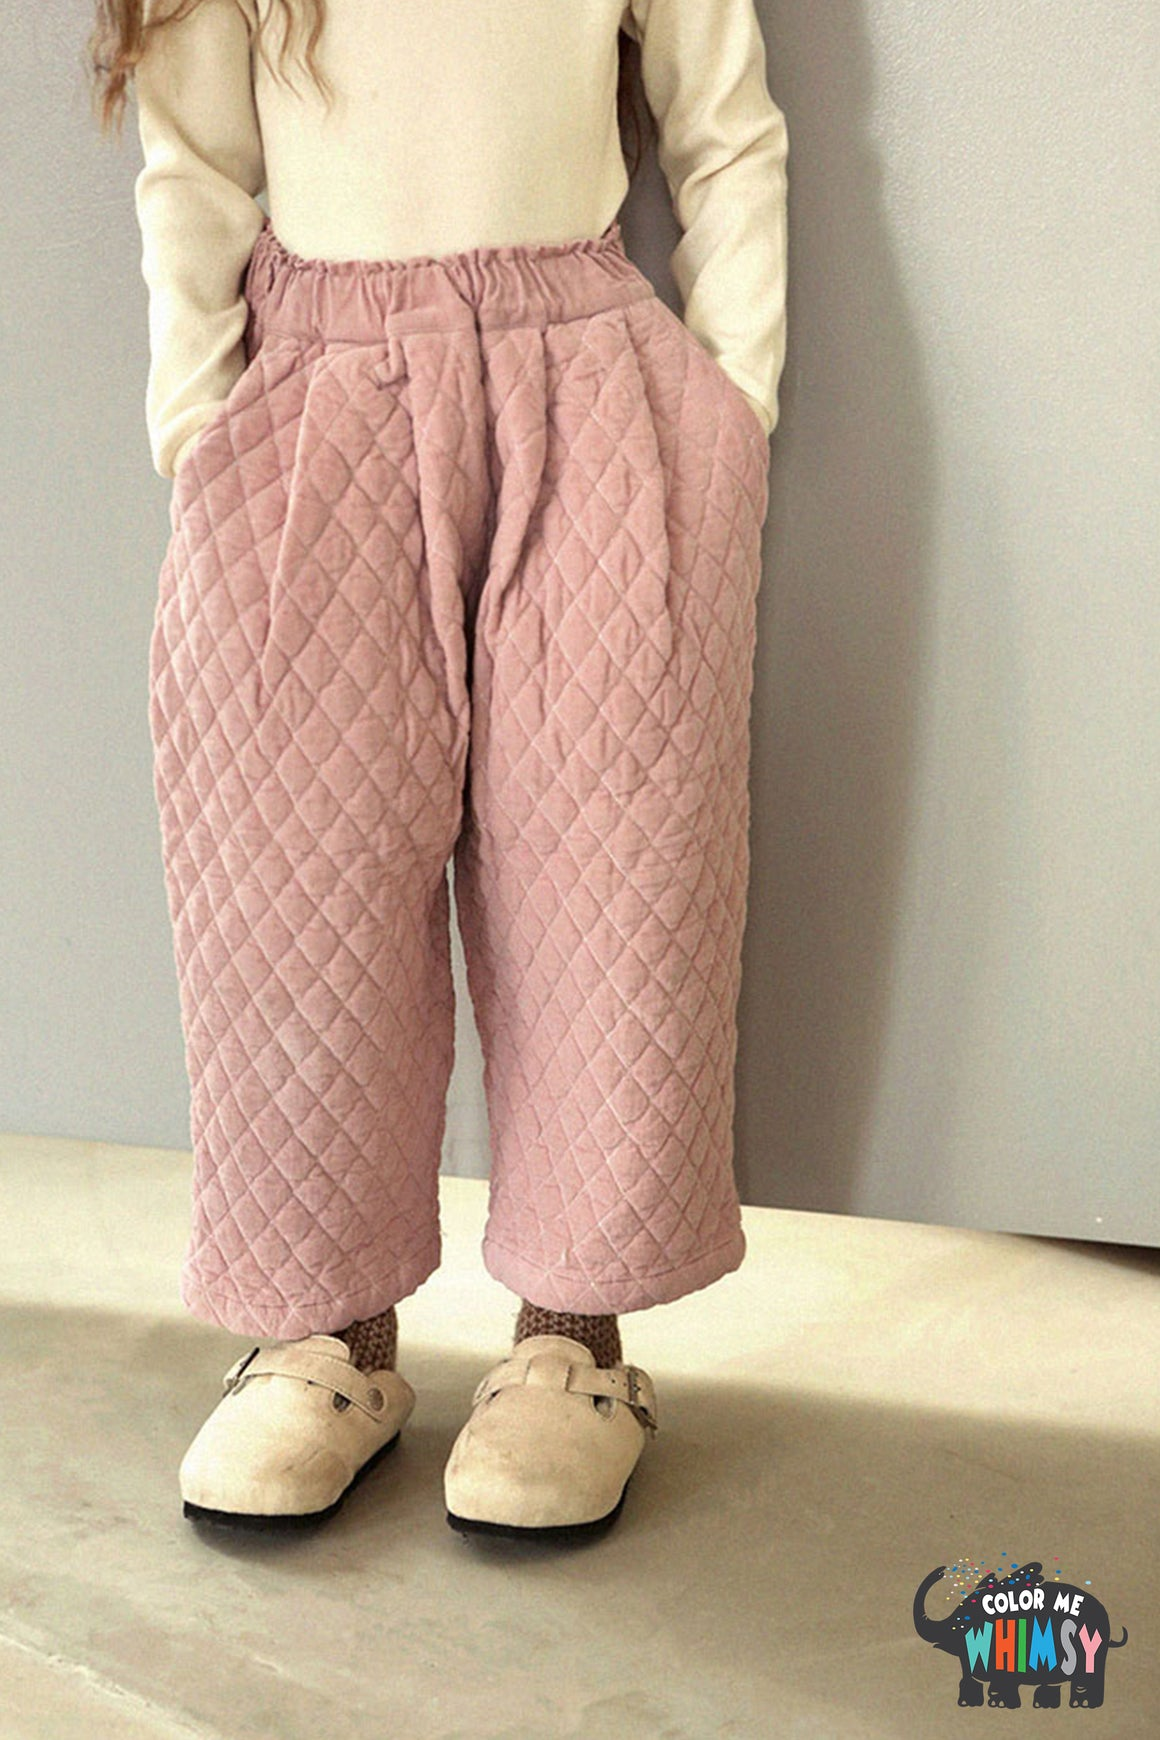 SCON Serin Quilt Pants at Color Me WHIMSY Hip Kid's Fashion Ethically Made in South Korea